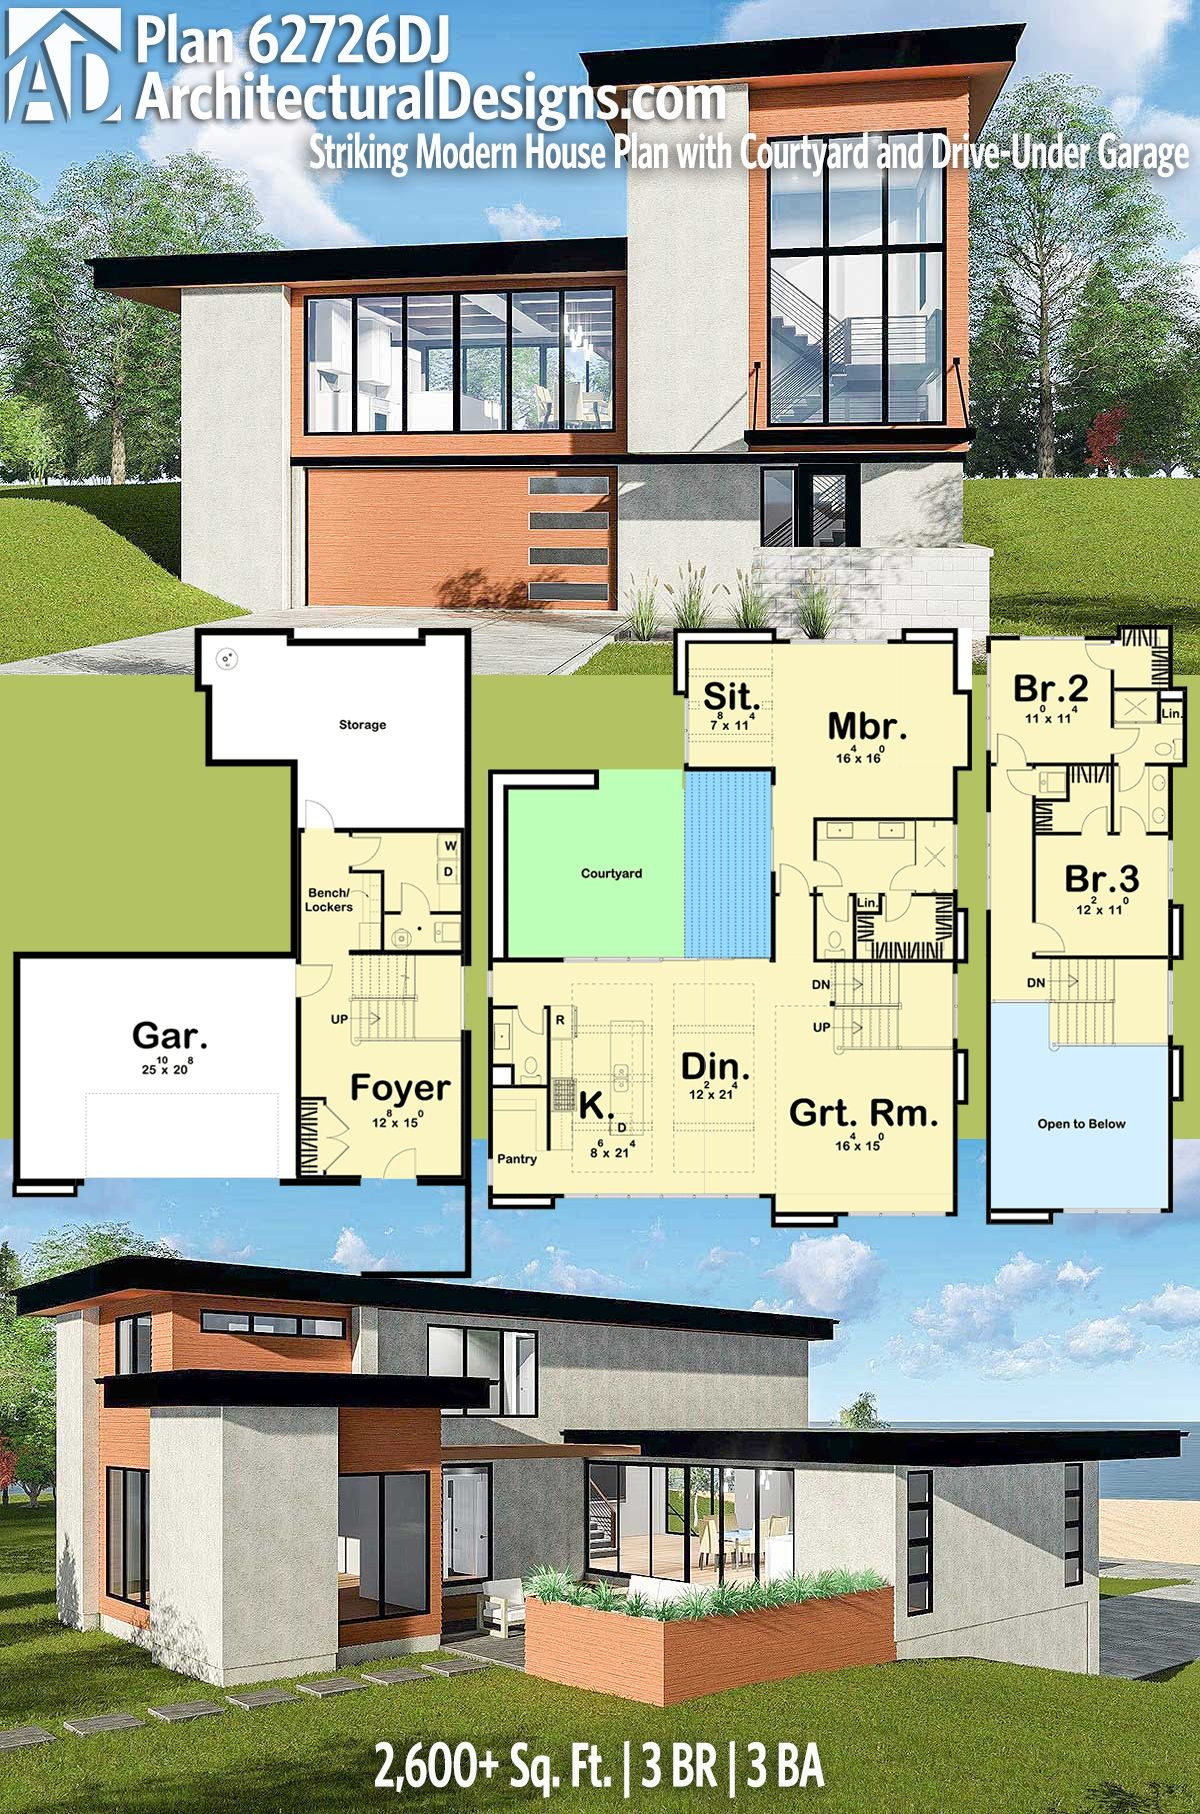 Modern House Plans with Cost to Build Luxury Plan Dj Striking Modern House Plan with Courtyard and